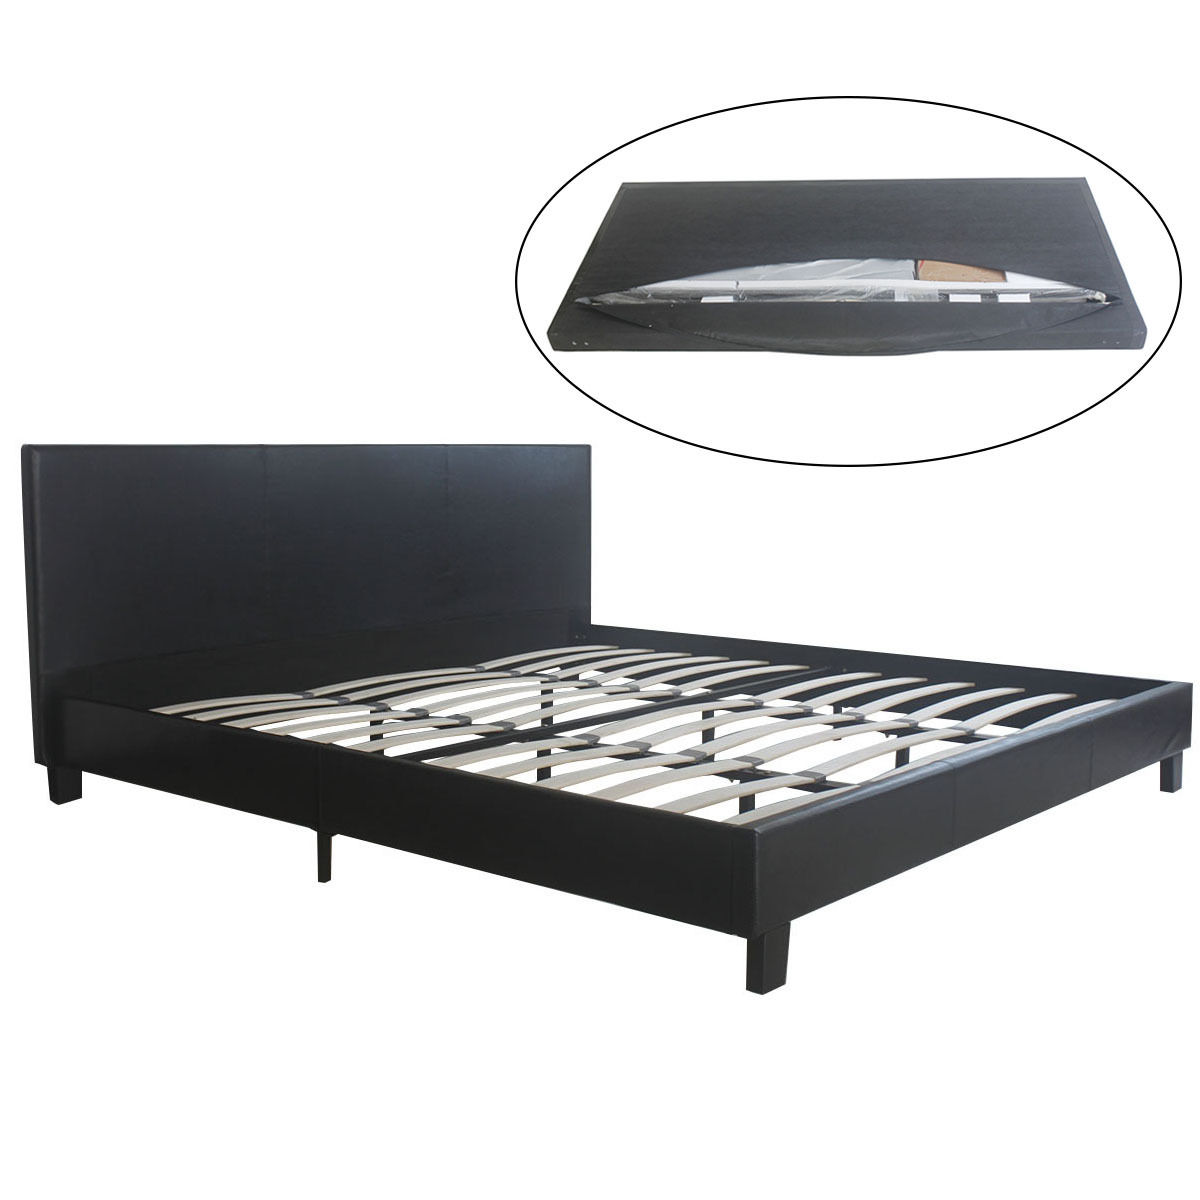 Costway Faux Leather Platform Bed King Size Wooden Slats Upholstered Headboard Black by Costway